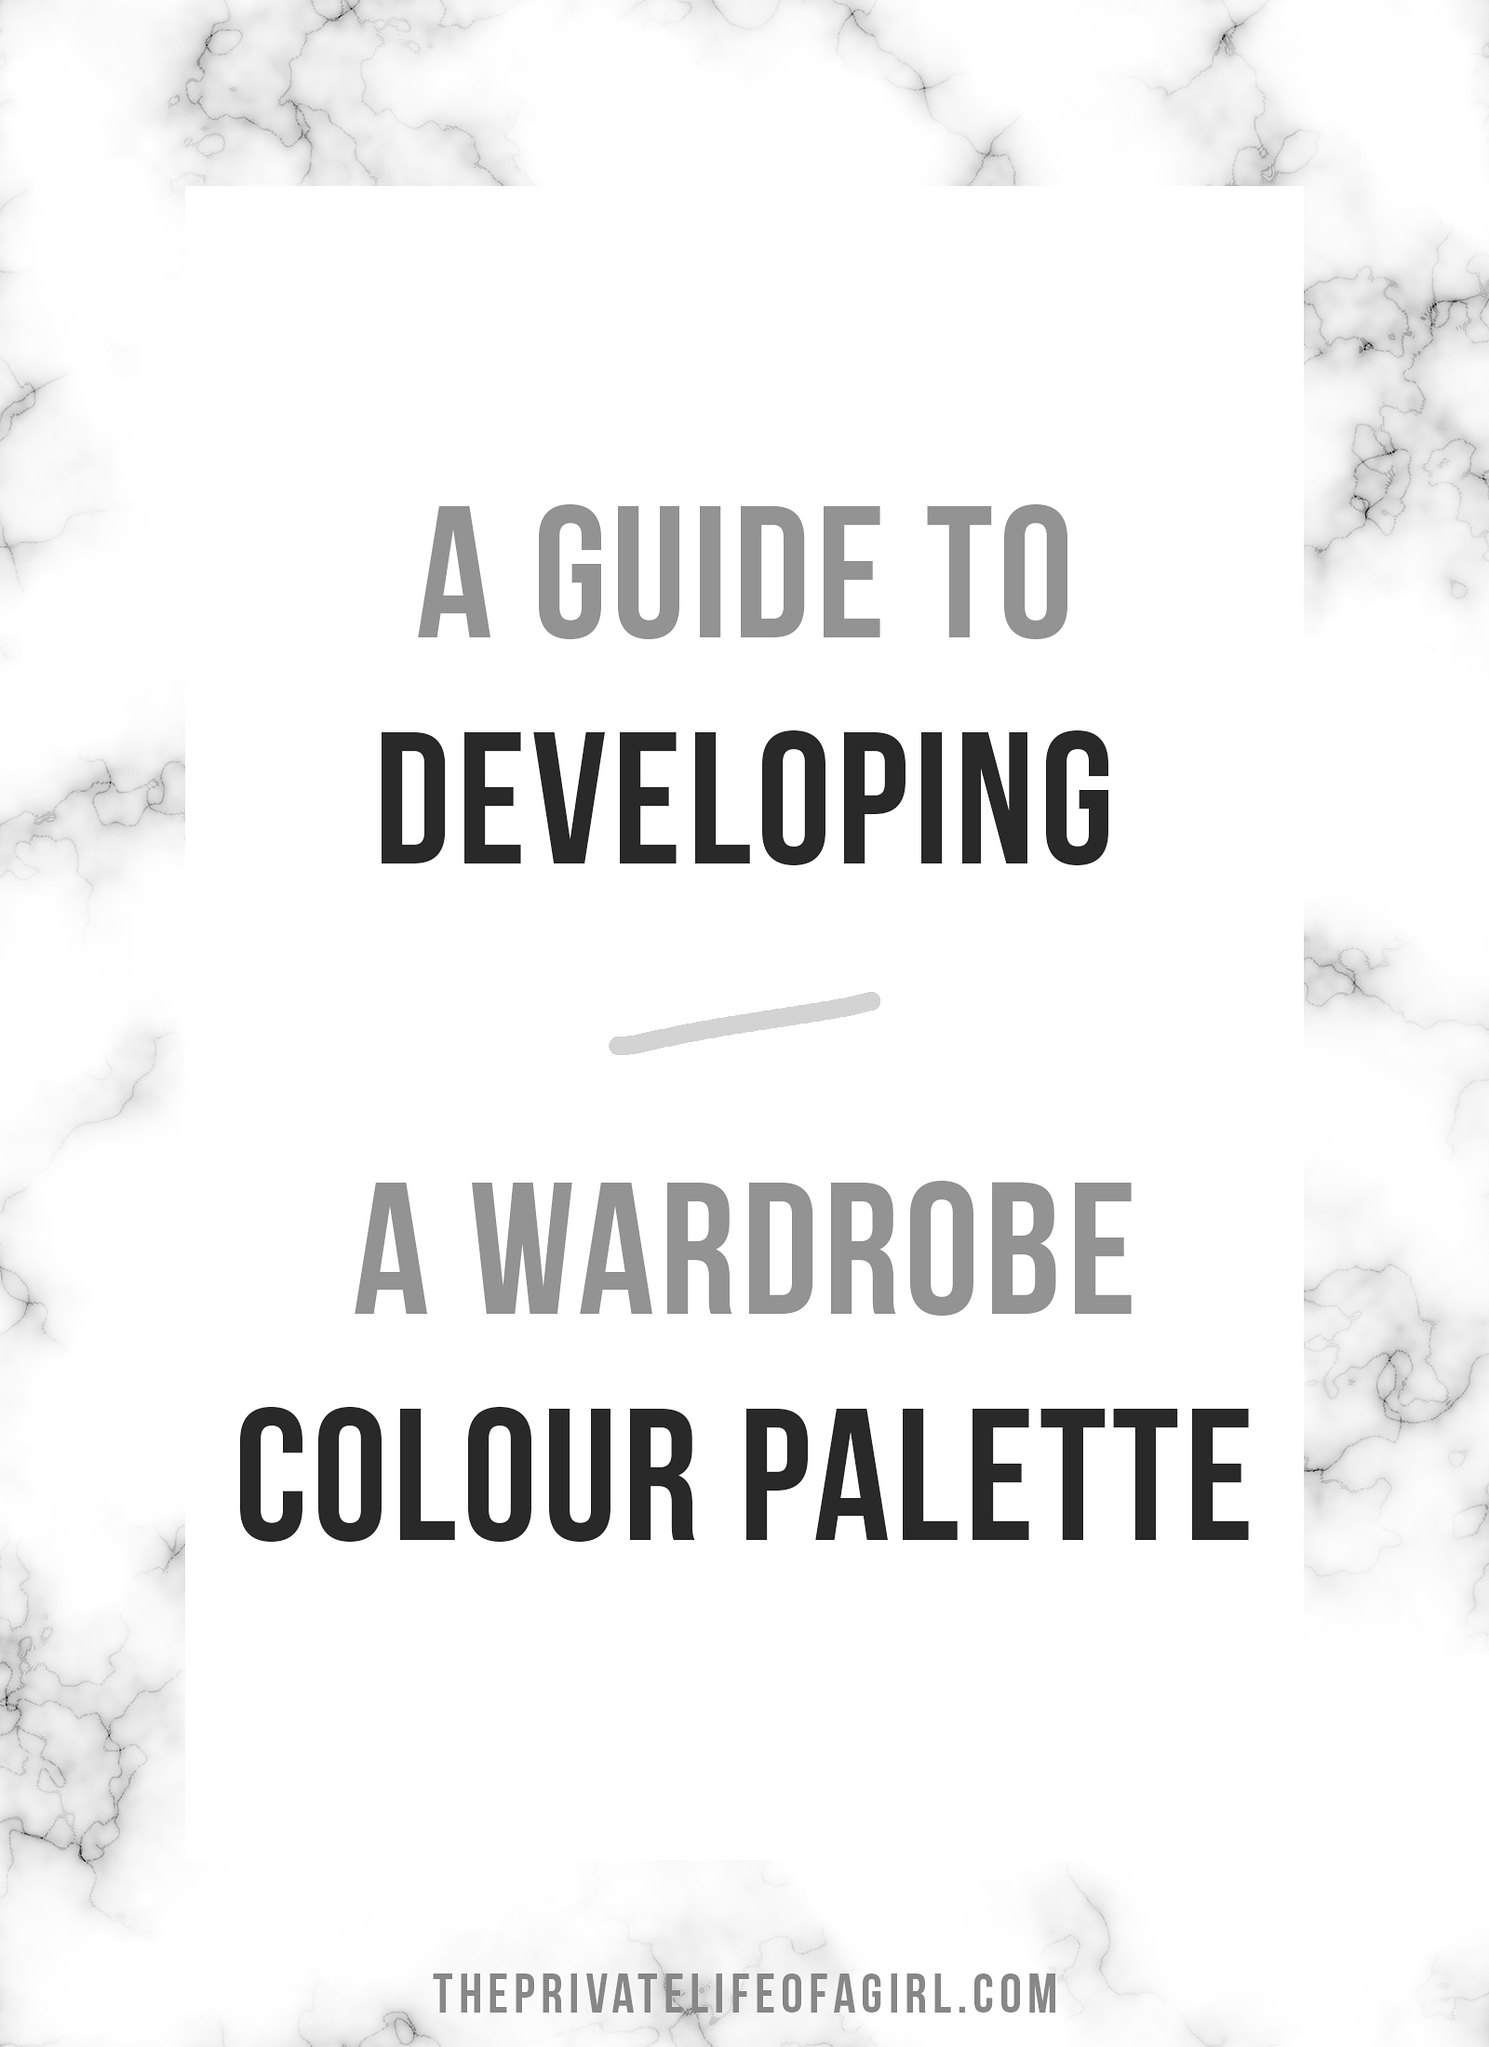 Developing a Wardrobe Colour Palette